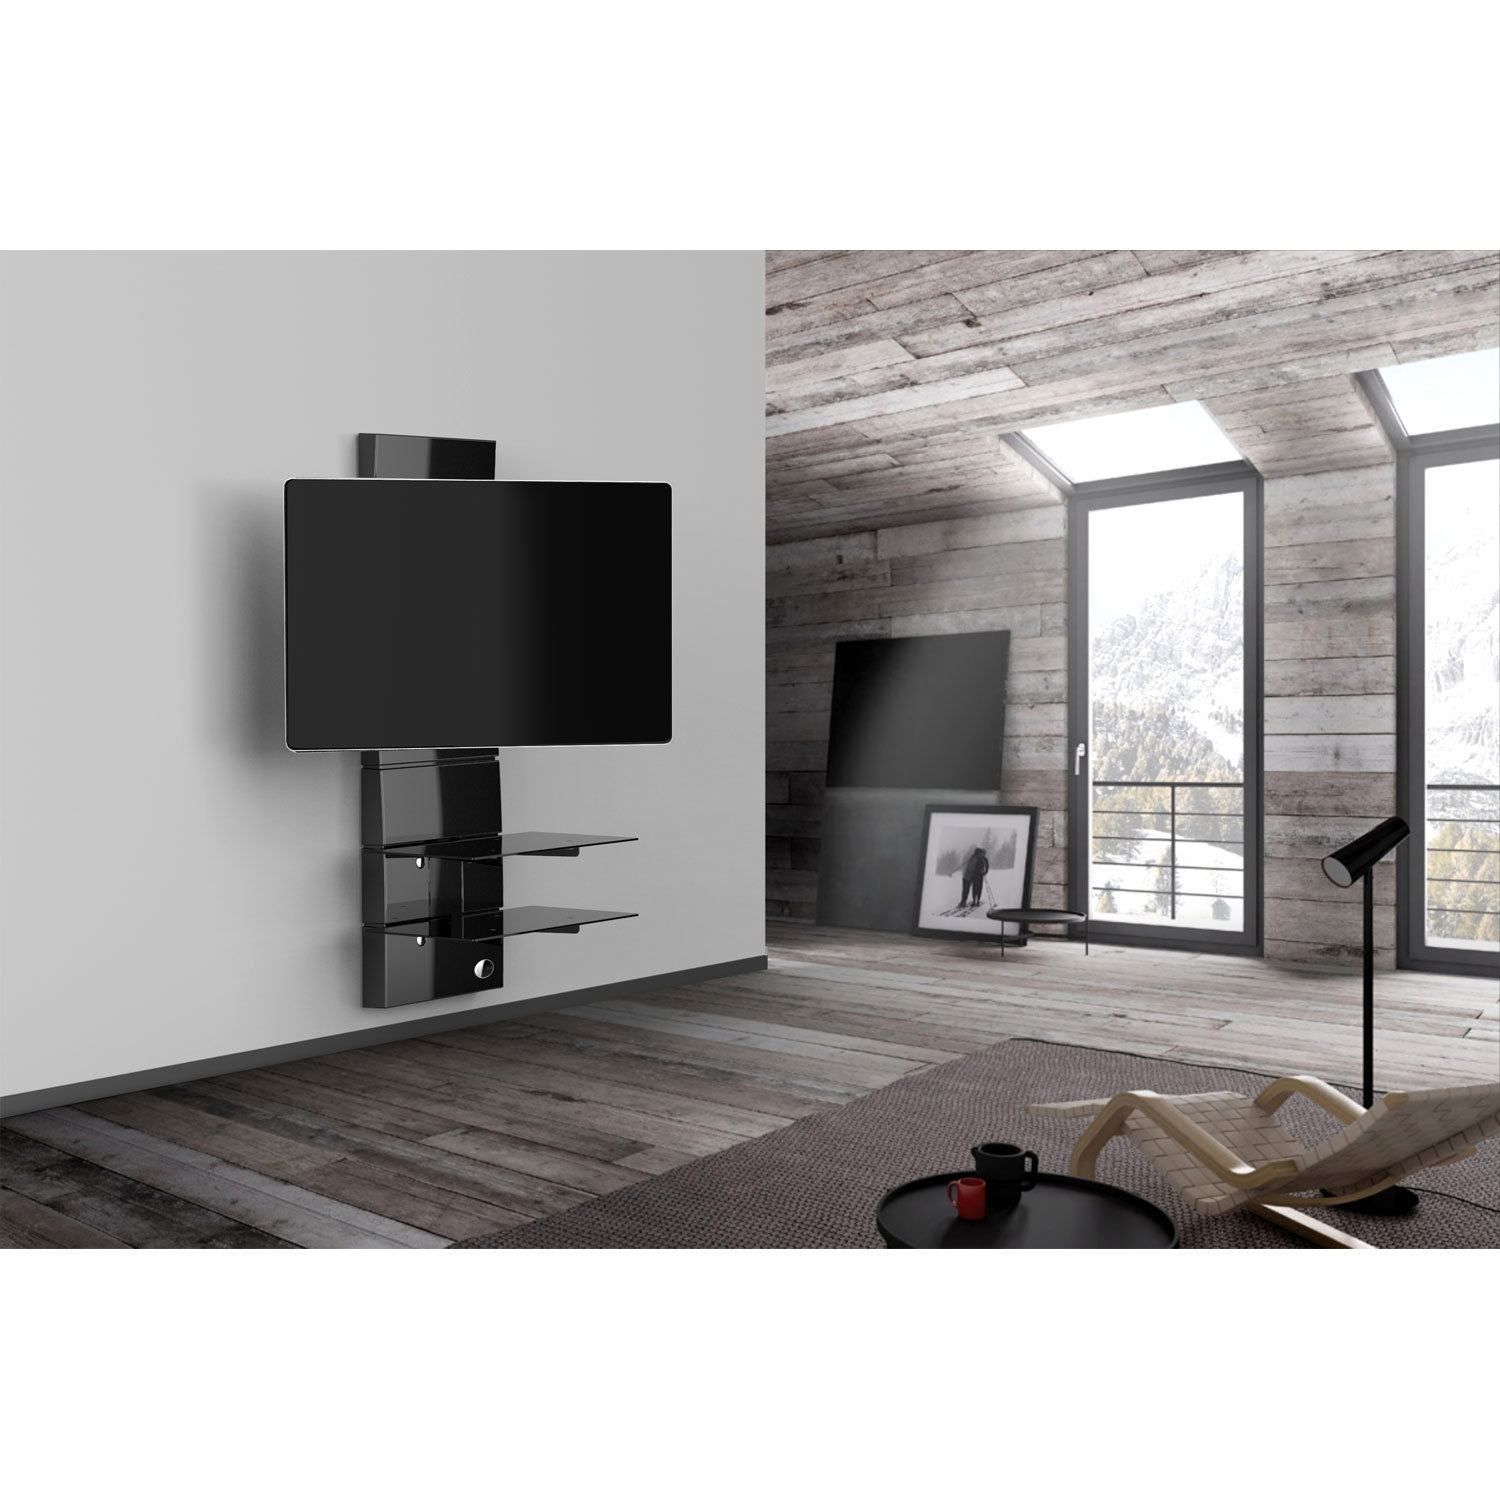 meliconi ghost design 3000 rotation noir (488310) : achat / vente ... - Meuble Tv Mural Meliconi Ghost Design 2000